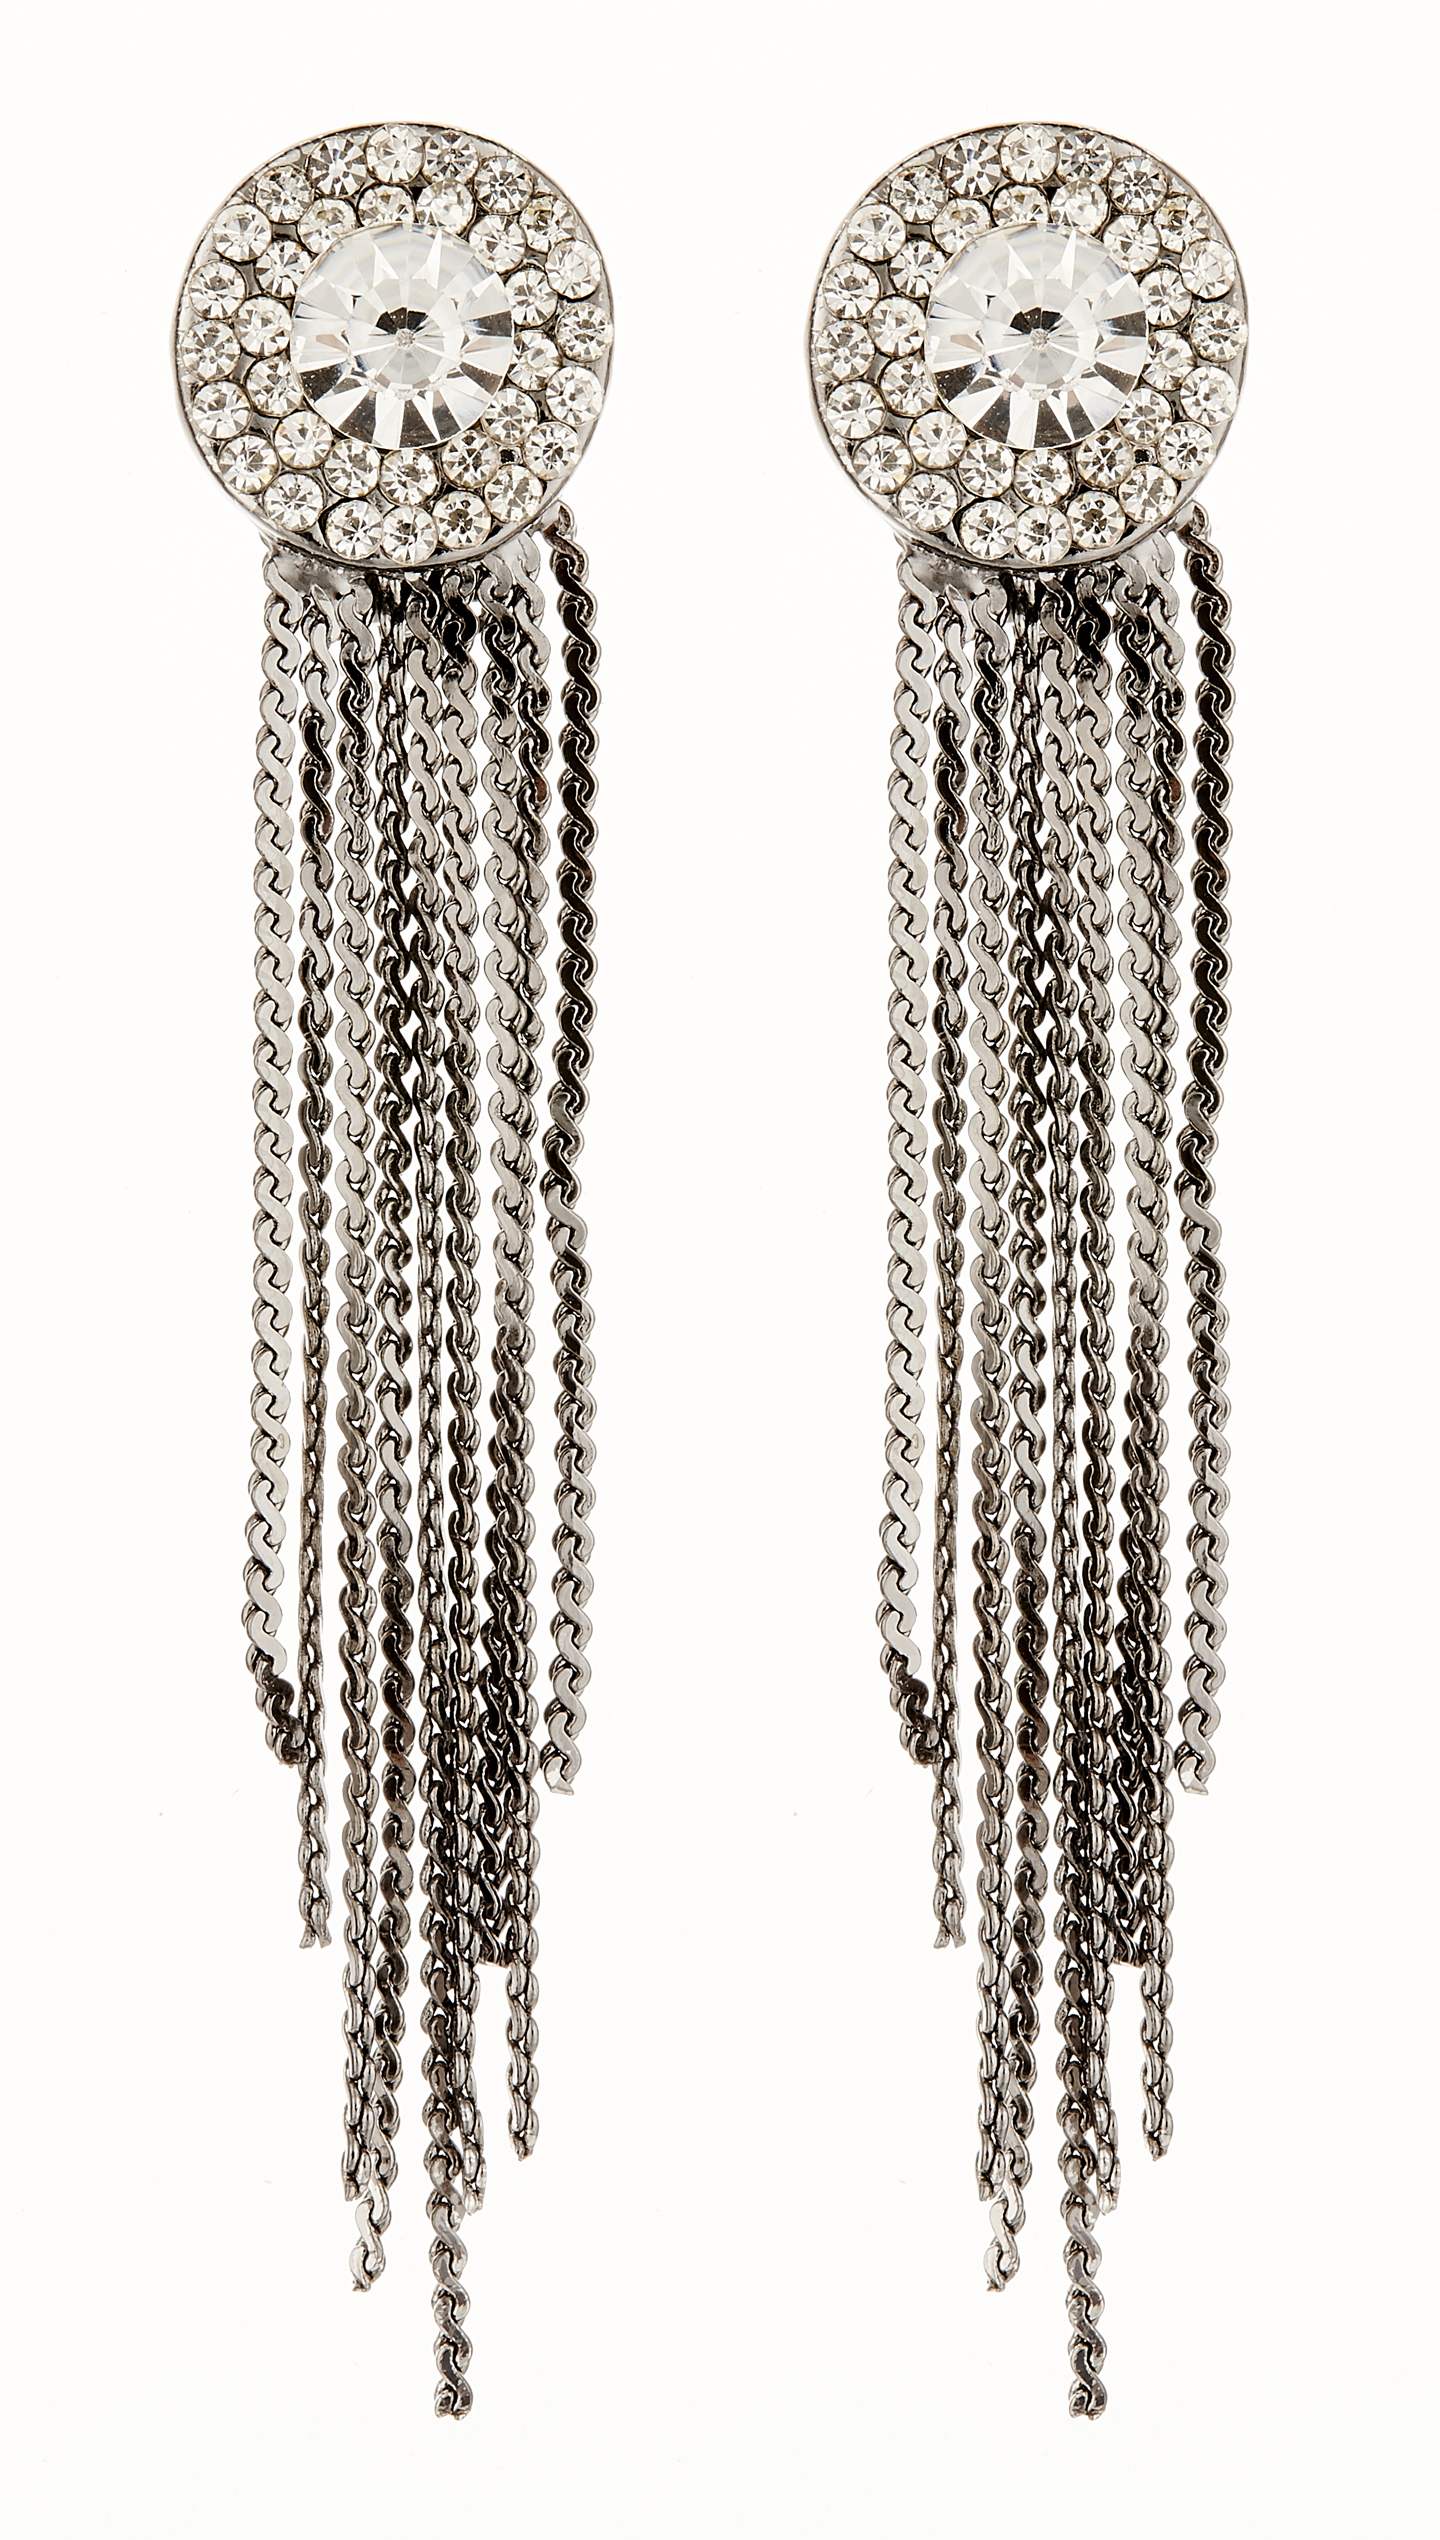 Clip On Earrings - Carol GM - gunmetal grey earring with clear crystals and linked strands